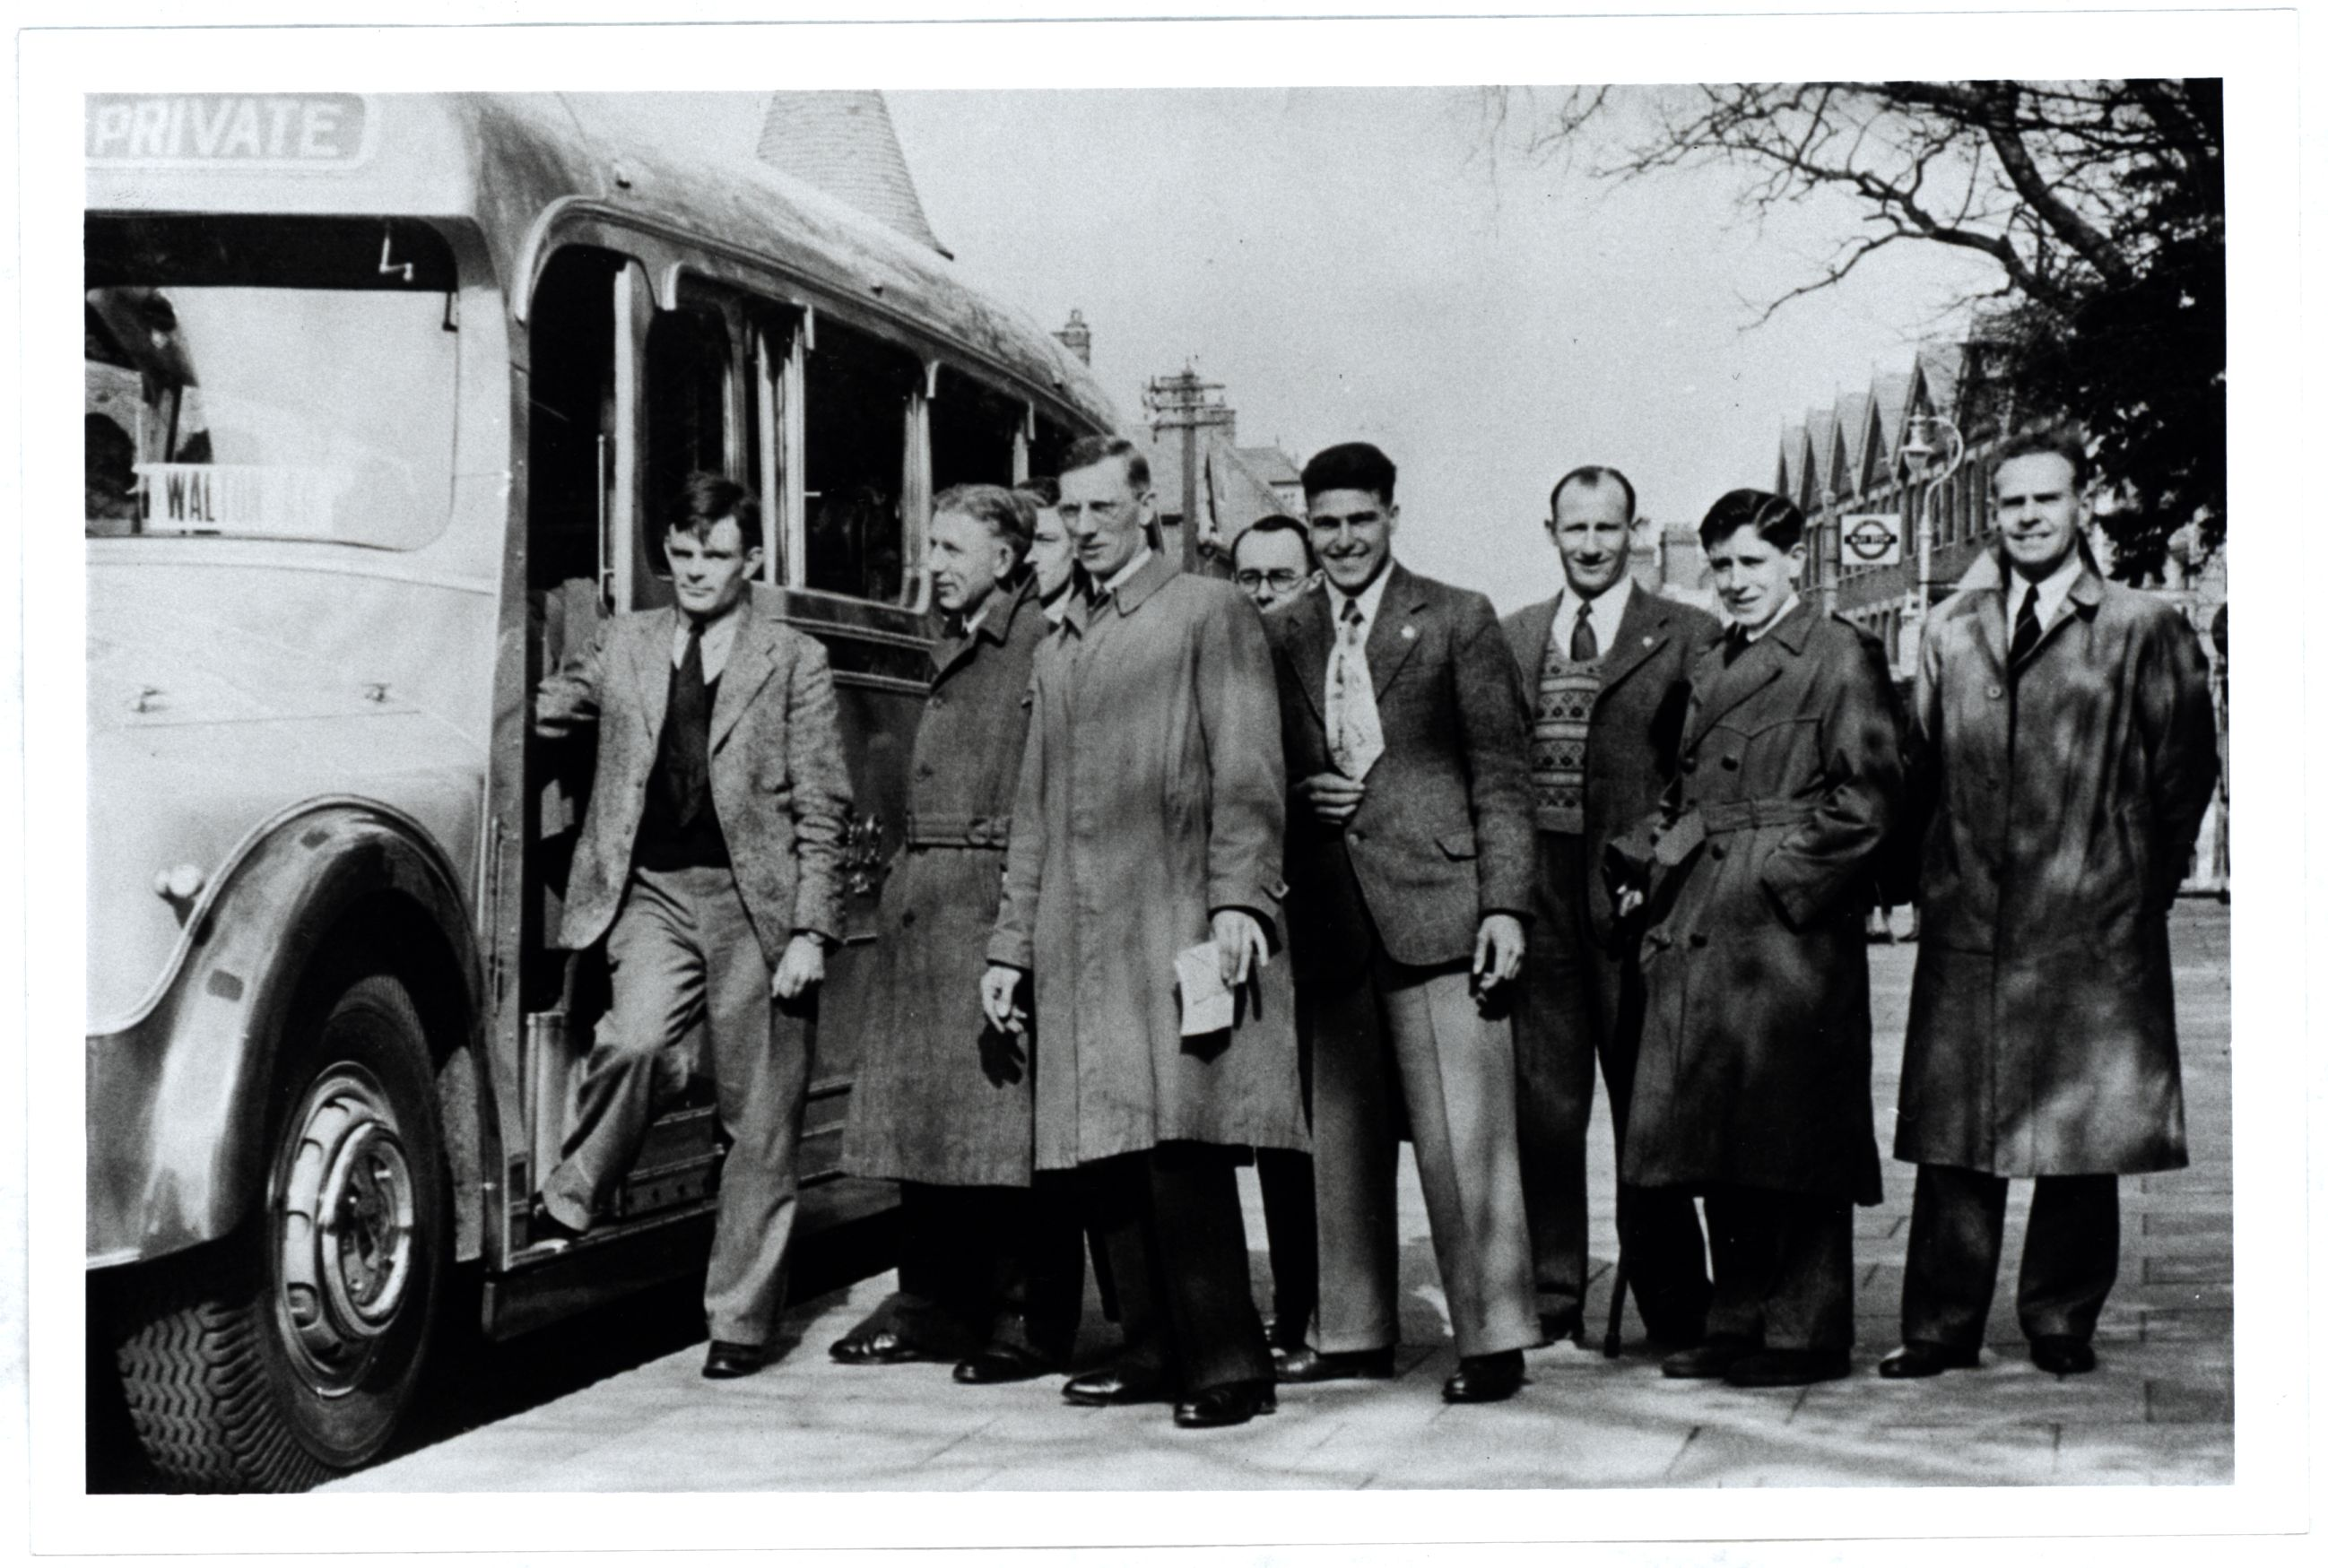 Turing with other members of the Walton Athletic Club, an amateur club based in Walton, Surrey. They were probably on their way to a meeting on a Saturday in 1946.  [AMT K/7/19]